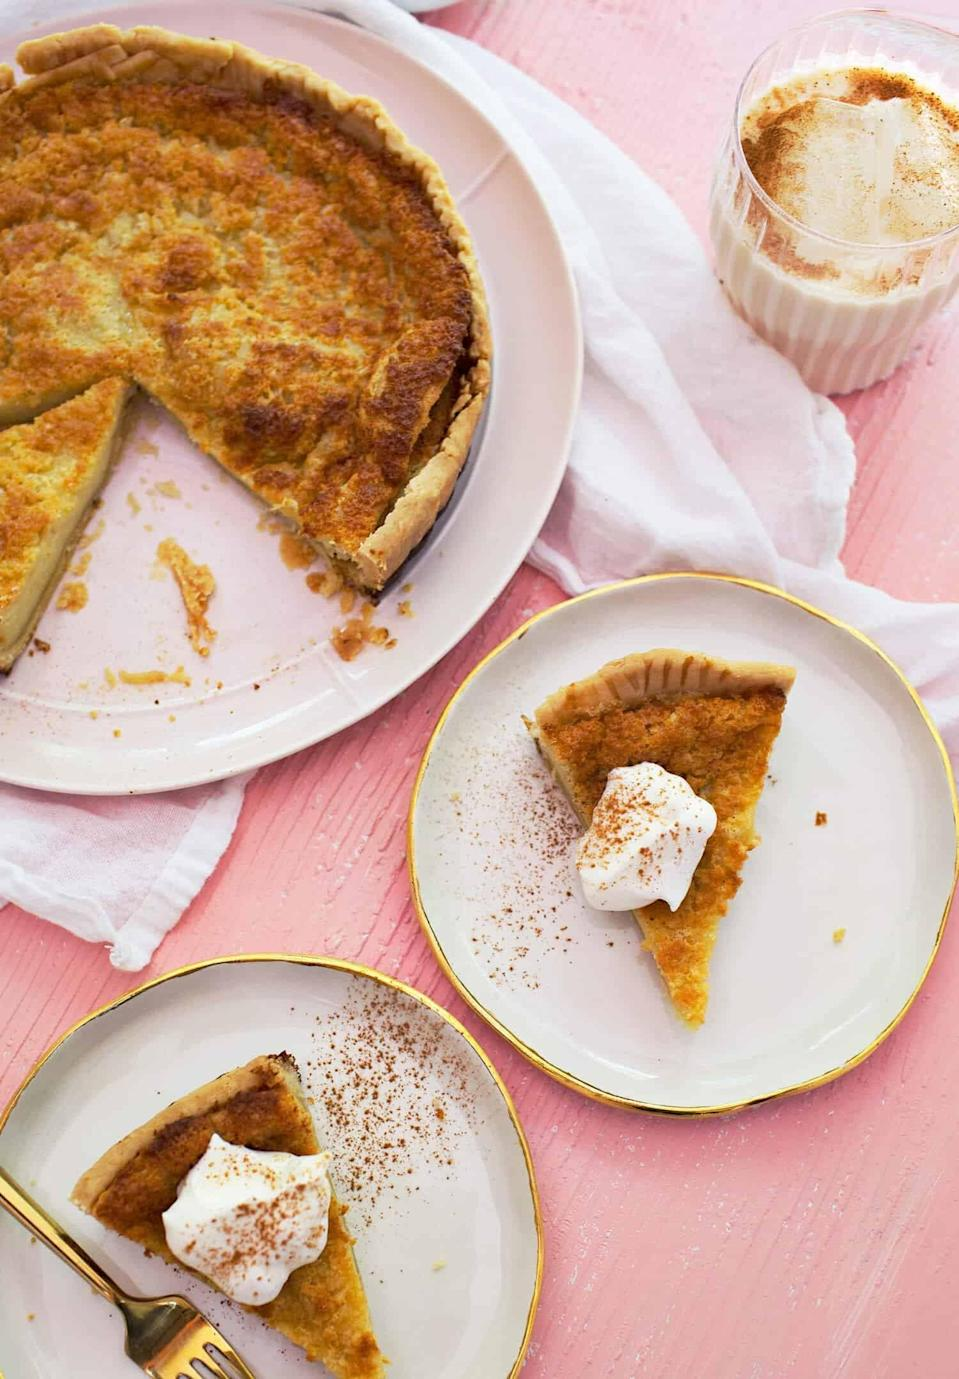 "<p>Sweet, rich, and perfectly spiced, this horchata pie is dangerously delicious. With notes of cinnamon and cream, you won't be able to get enough.</p> <p><strong>Get the recipe:</strong> <a href=""https://abeautifulmess.com/horchata-custard-pie/"" class=""link rapid-noclick-resp"" rel=""nofollow noopener"" target=""_blank"" data-ylk=""slk:horchata custard pie"">horchata custard pie</a></p>"